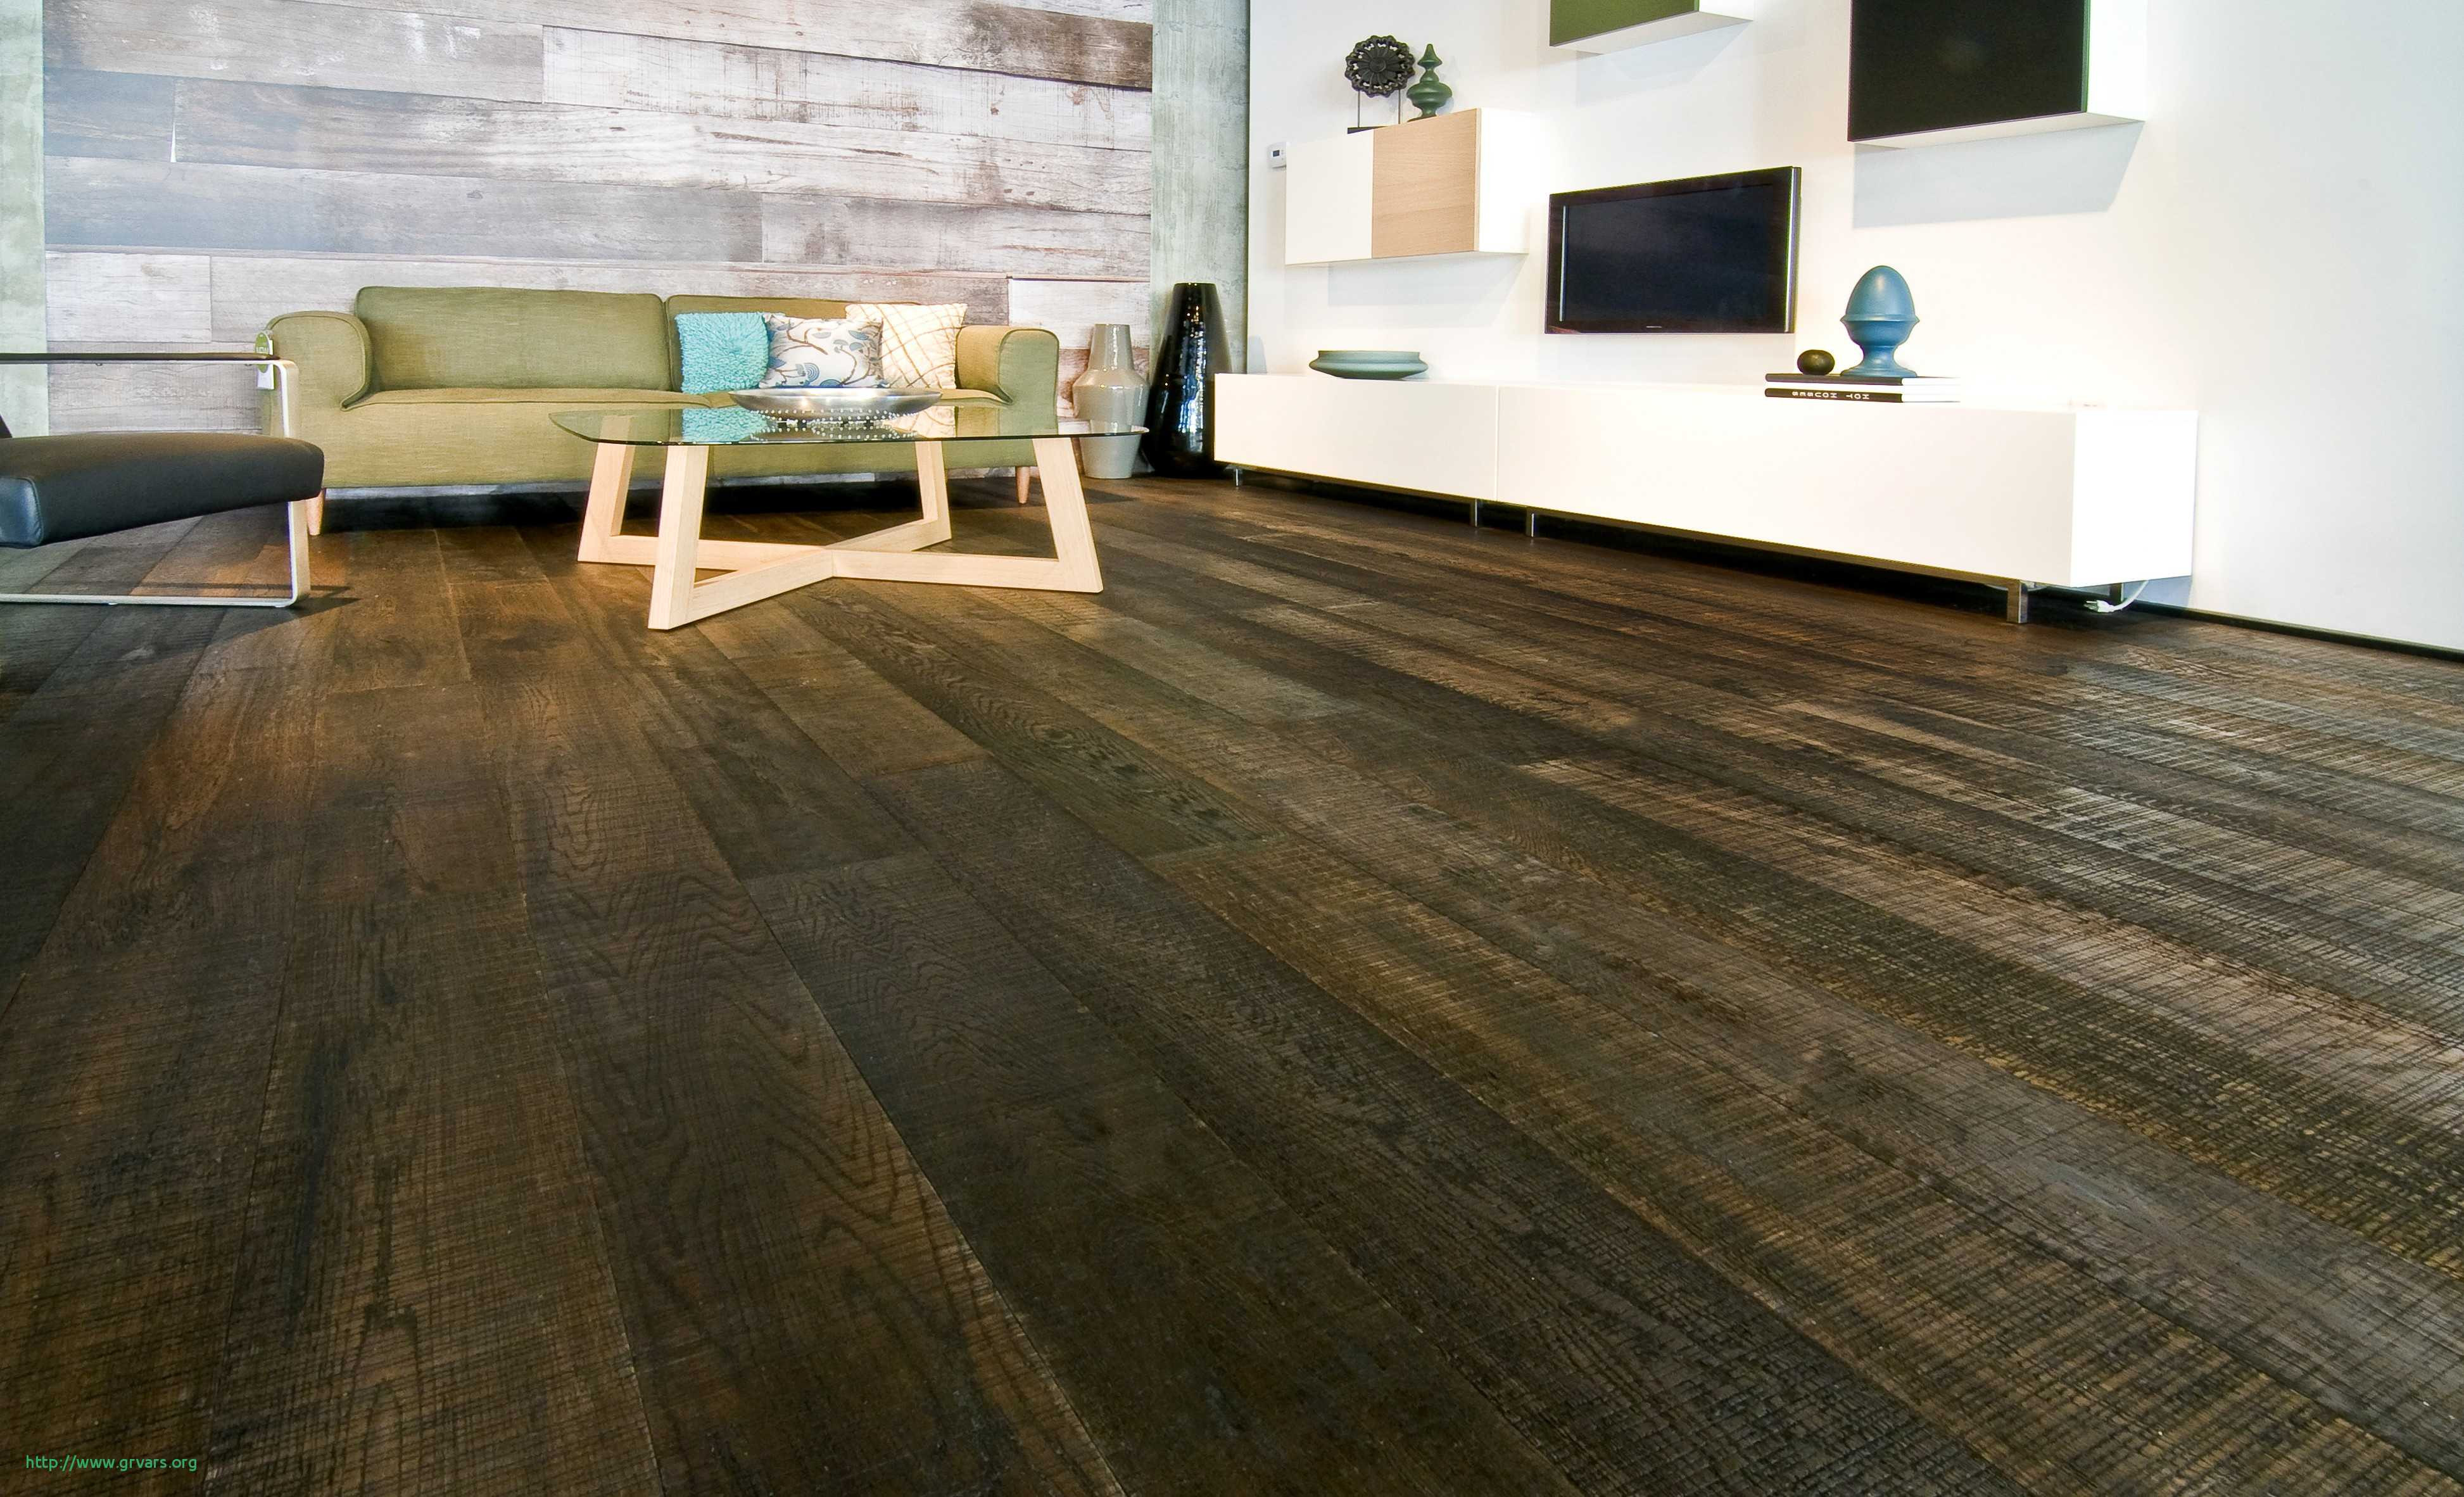 hardwood floor installation dallas of 20 impressionnant cheapest place to buy hardwood flooring ideas blog within acacia wood flooring where to buy hardwood flooring inspirational 0d grace place barnegat